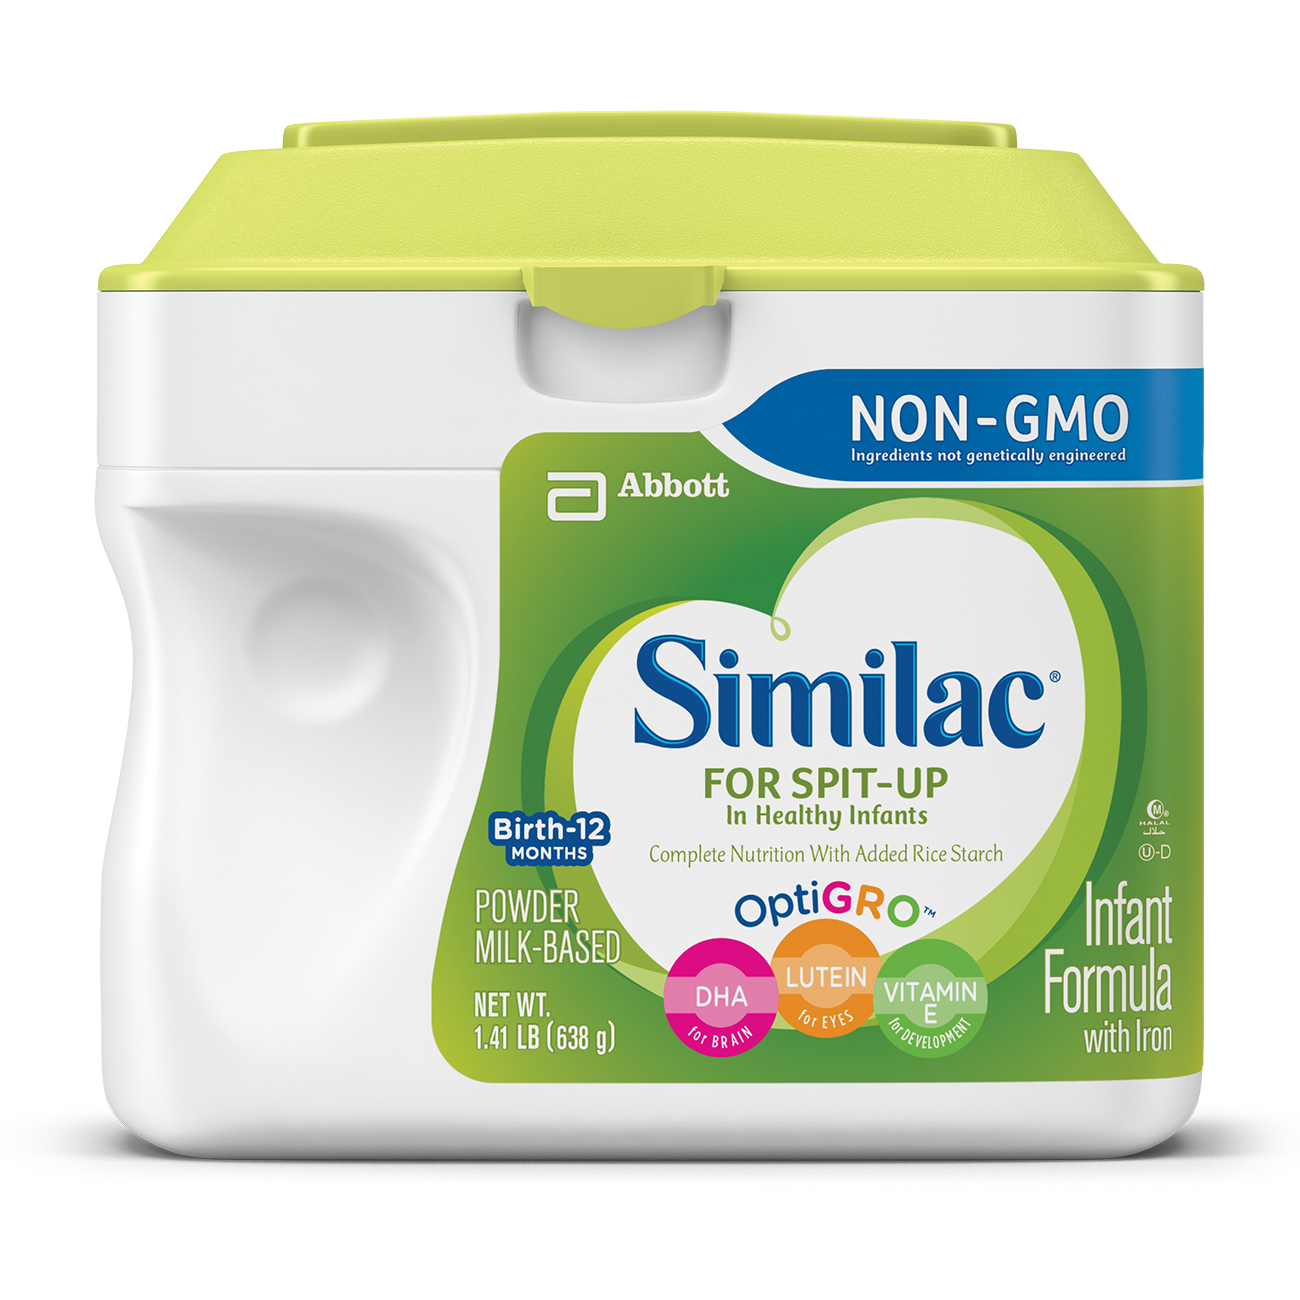 Similac for Spit-Up NON-GMO Infant Formula with Iron, Powder, 1.41 lb (Pack of 6)